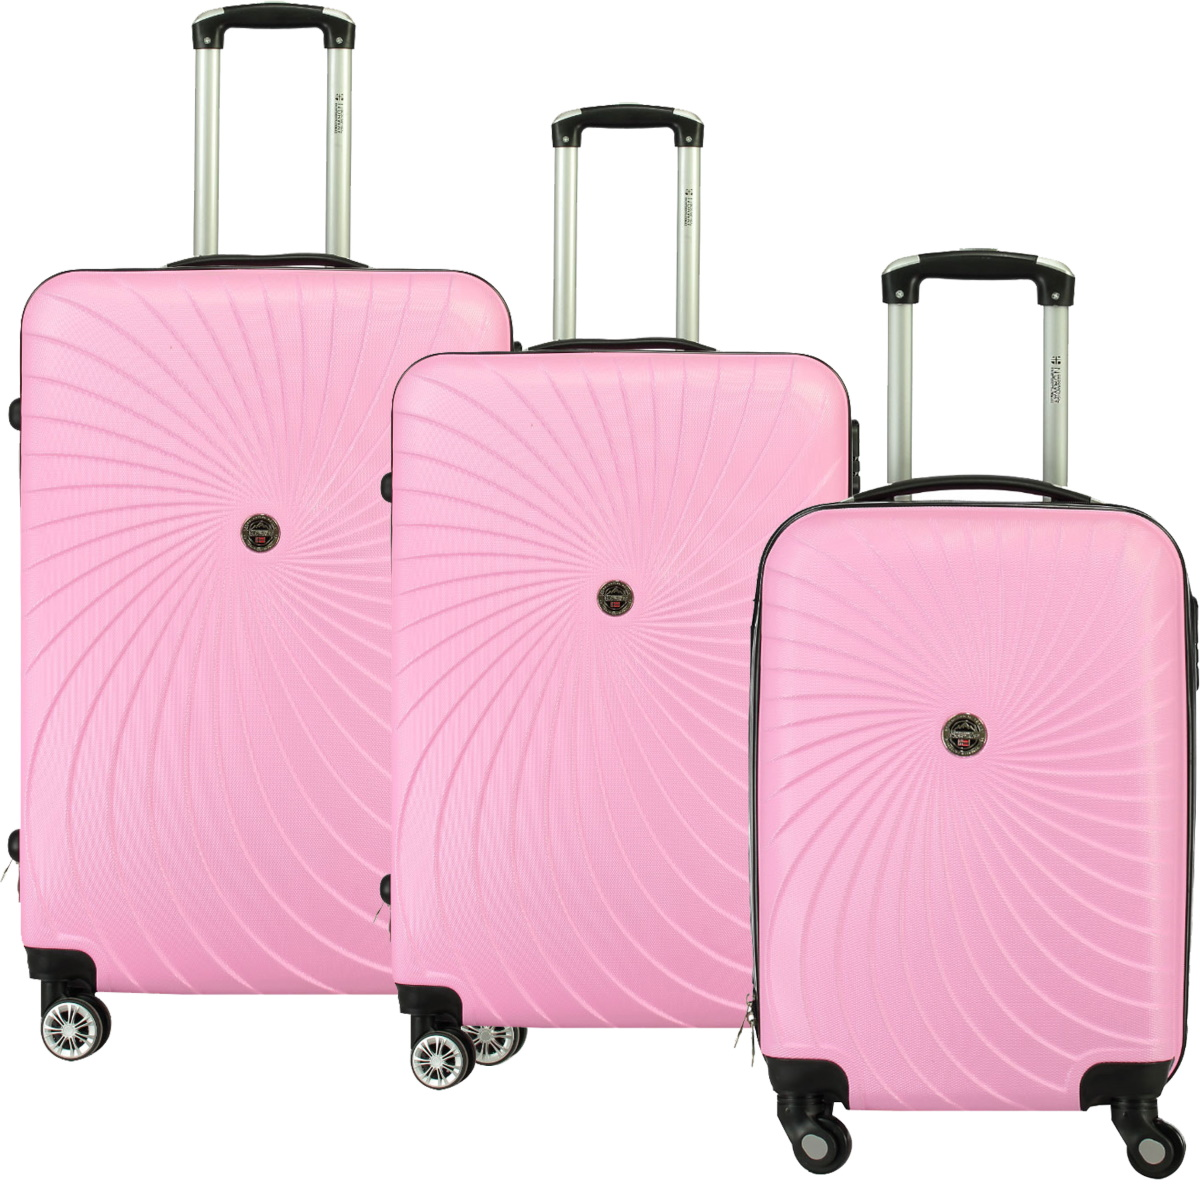 VALISE SUNLIGHT ROSE